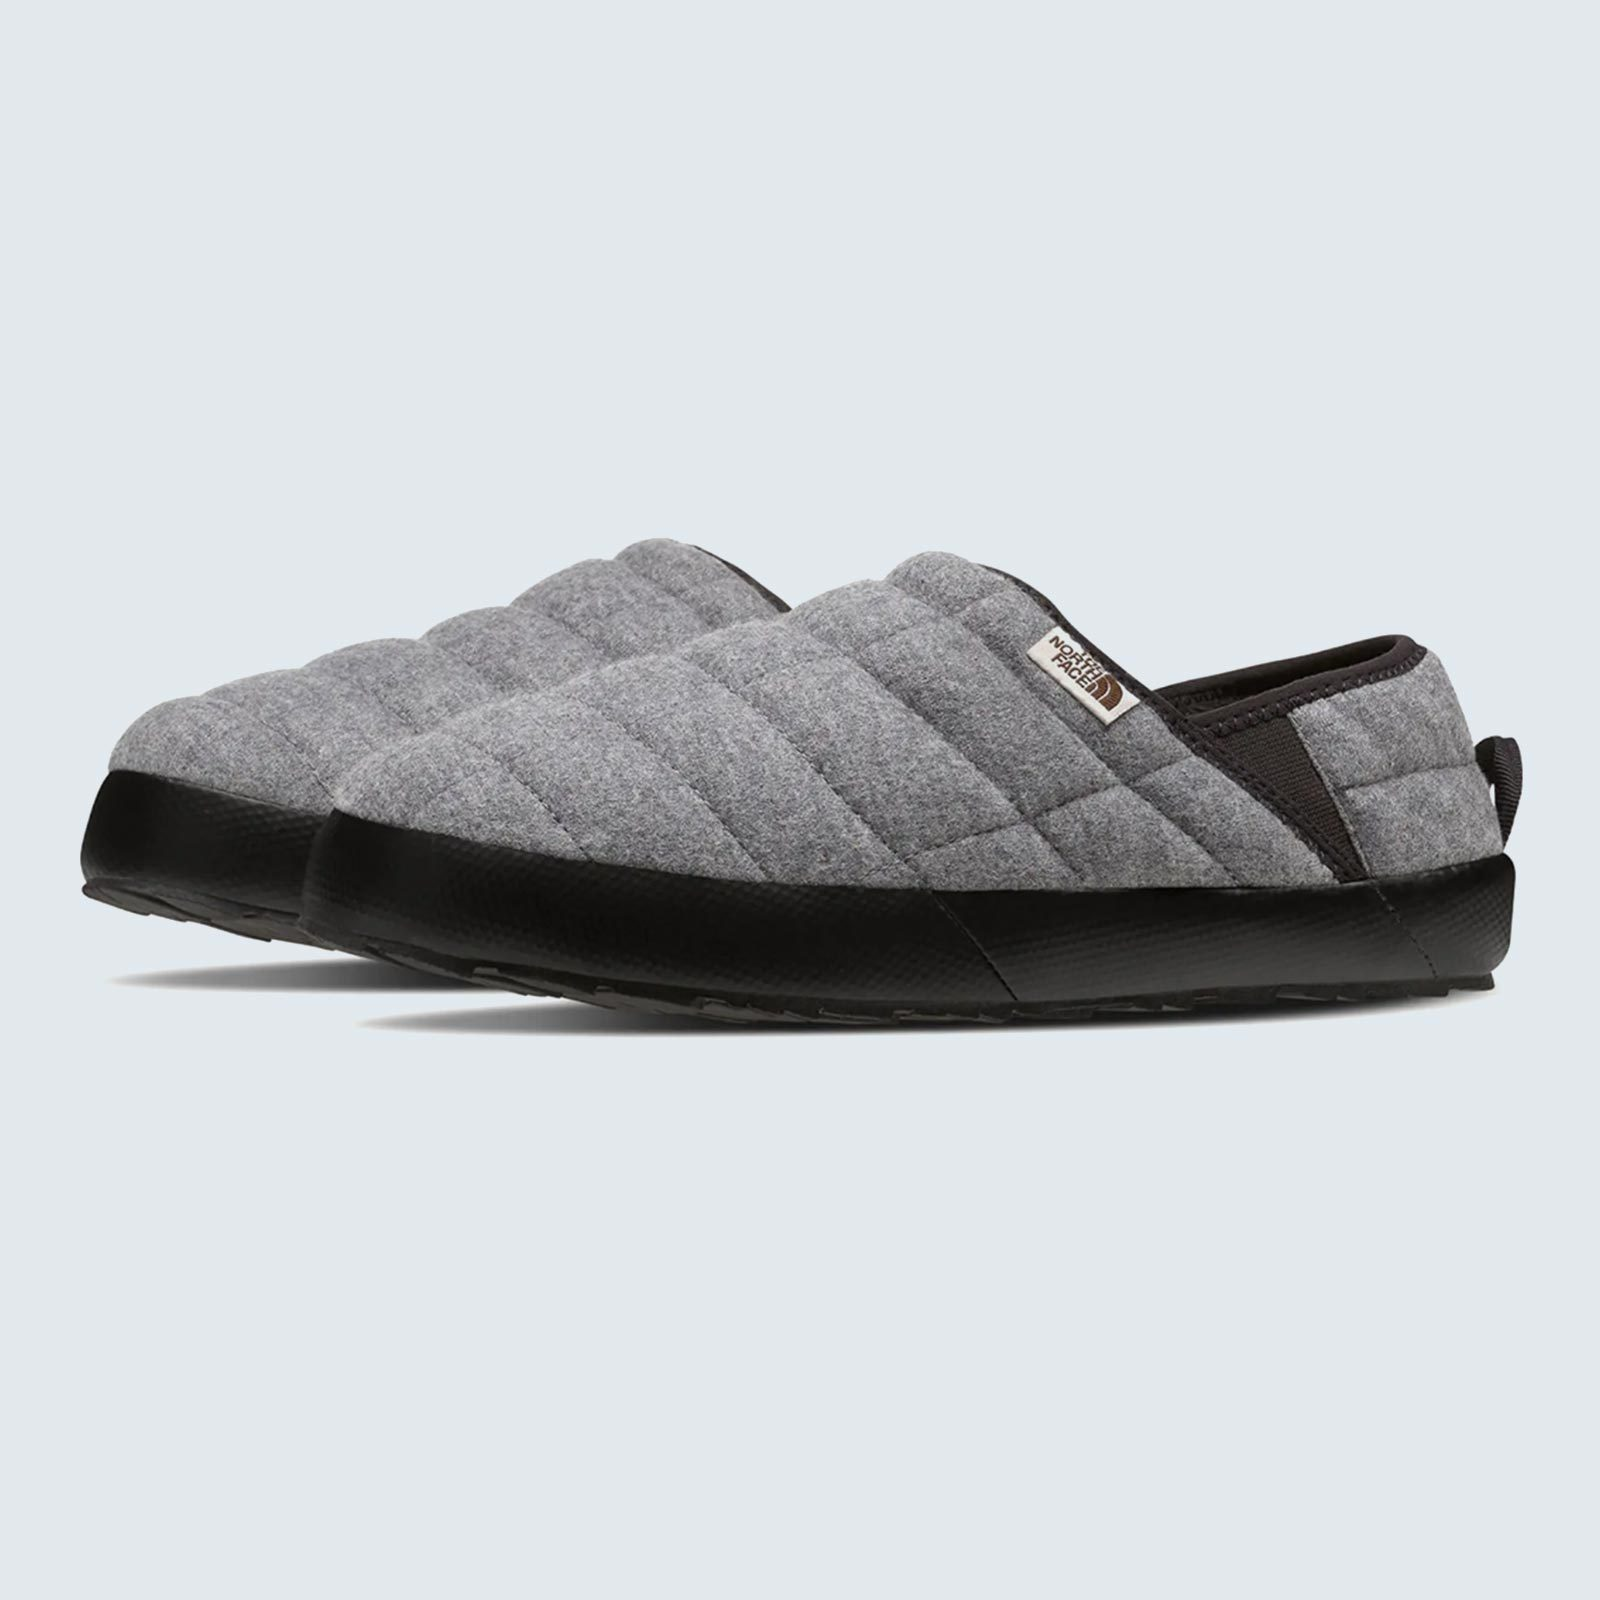 Best slippers for camping: The North Face Thermoball Traction Slipper